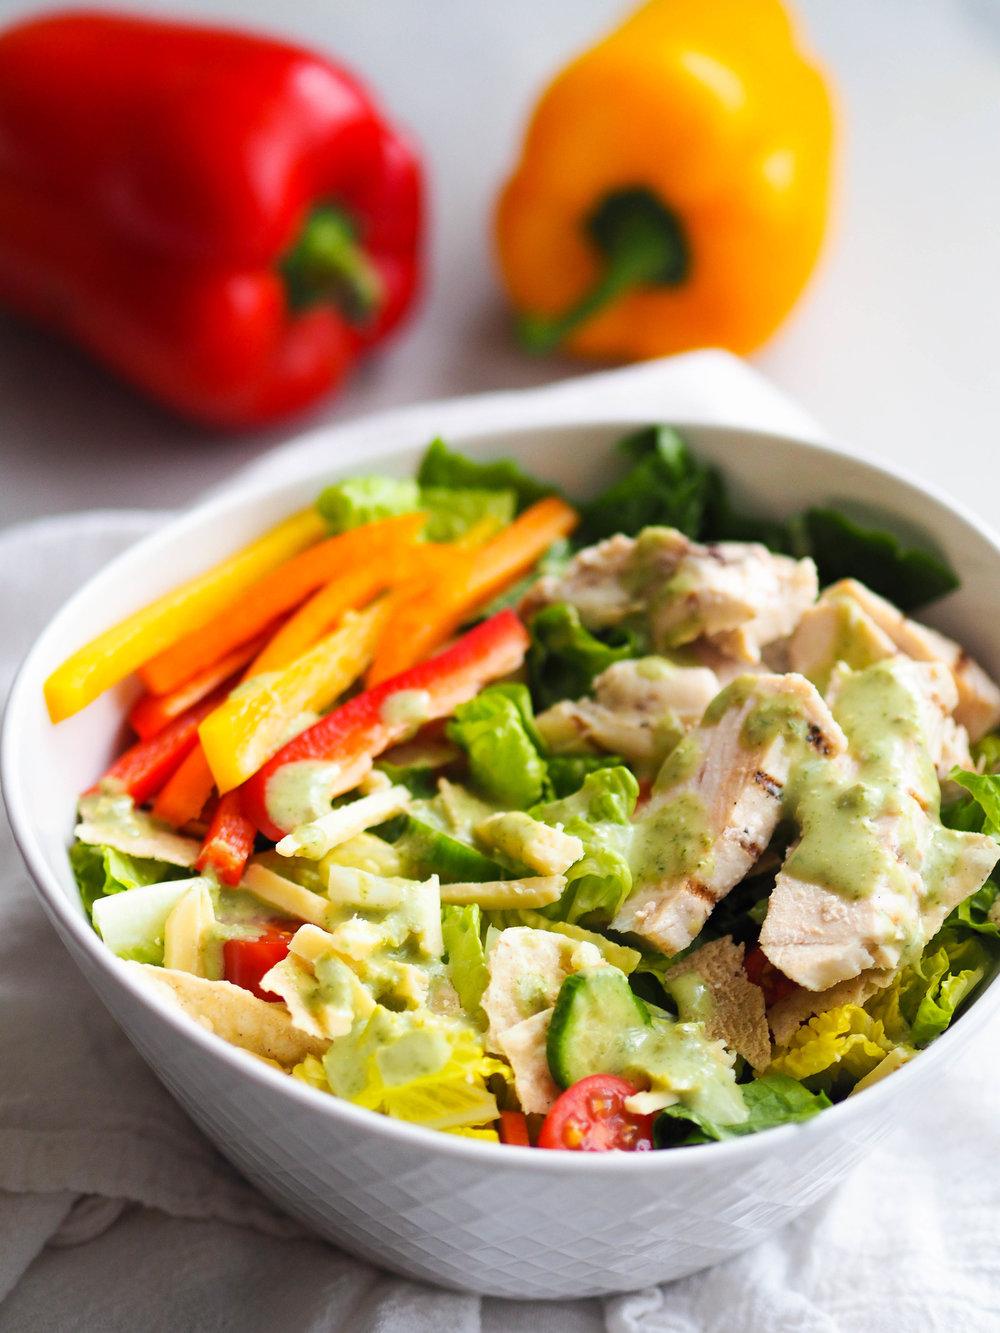 Chicken Tortilla Salad made with Crunchy Salad Mix